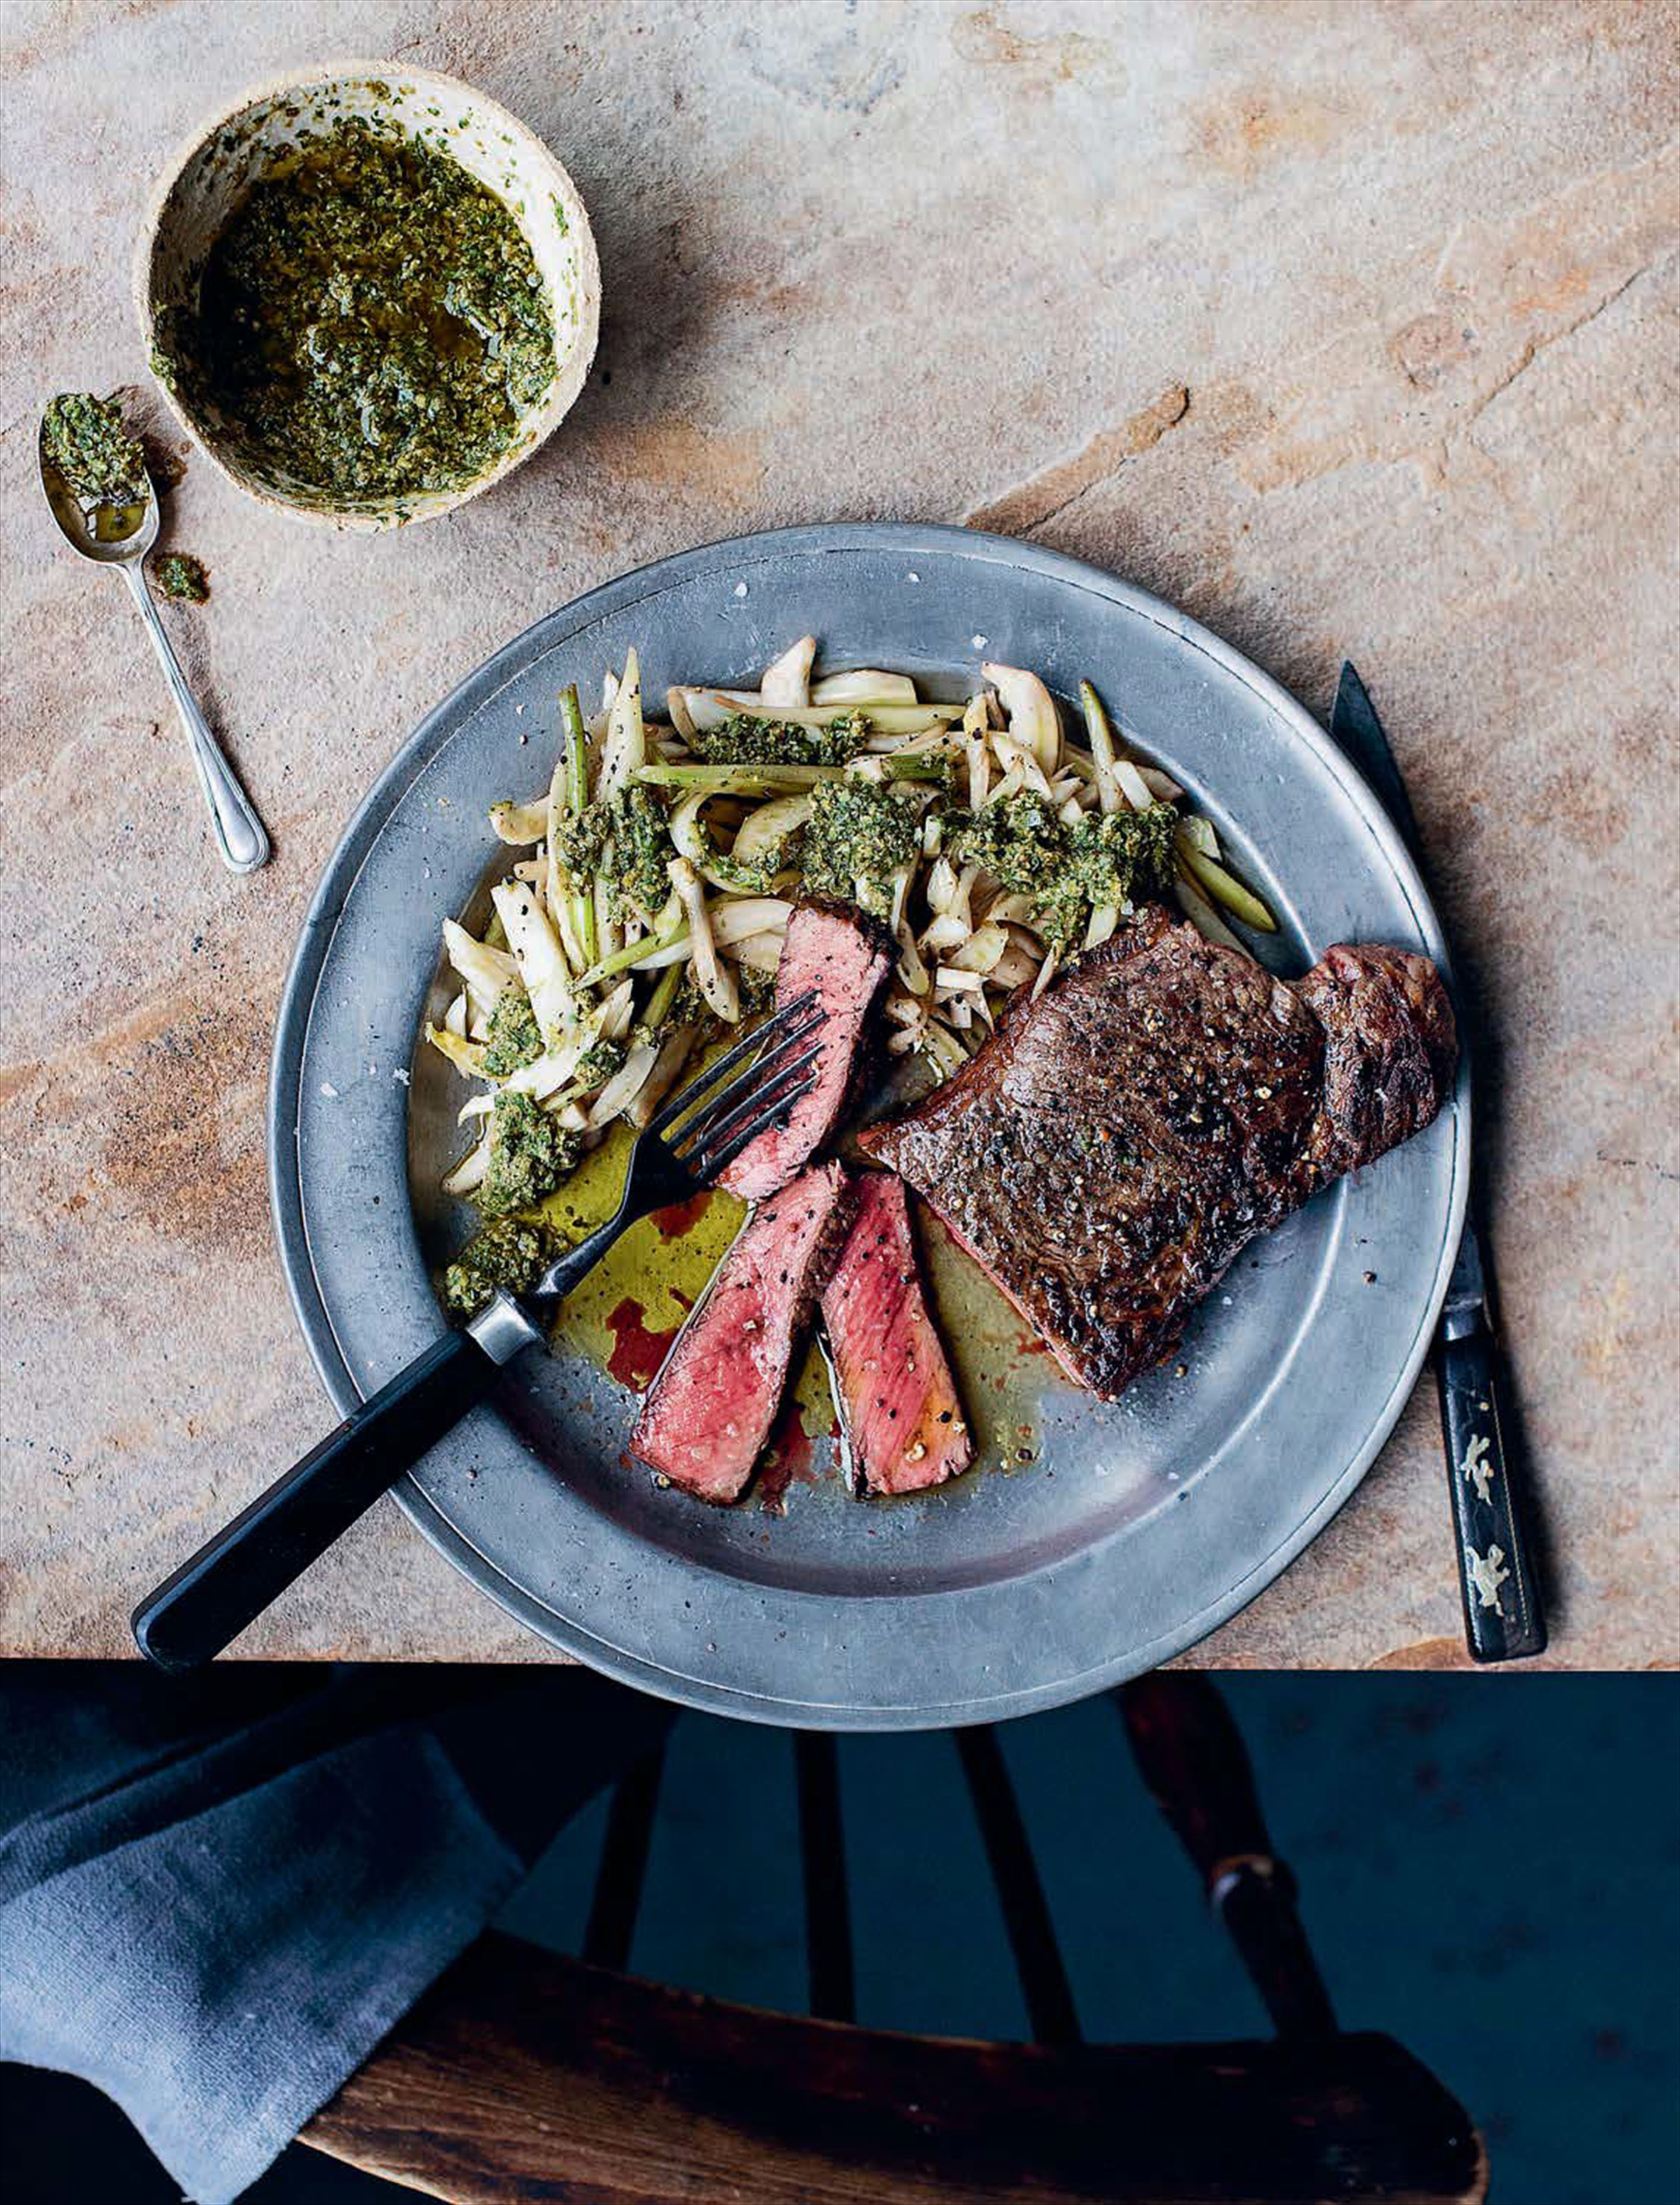 Steak with salsa verde and shredded fennel salad